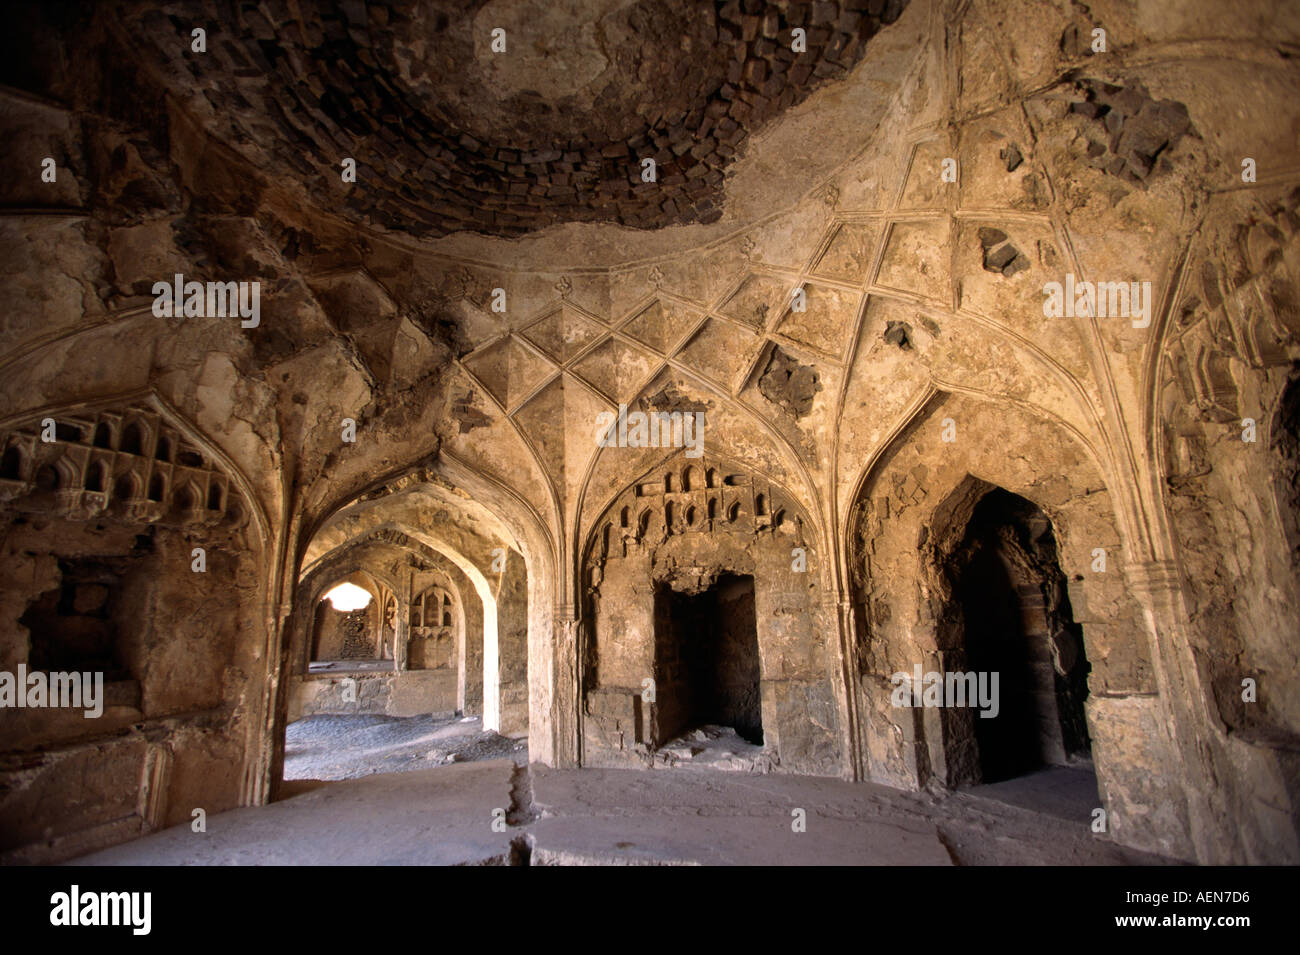 India Andhra Pradesh Hyderabad Golconda Fort vaulted ceiling - Stock Image